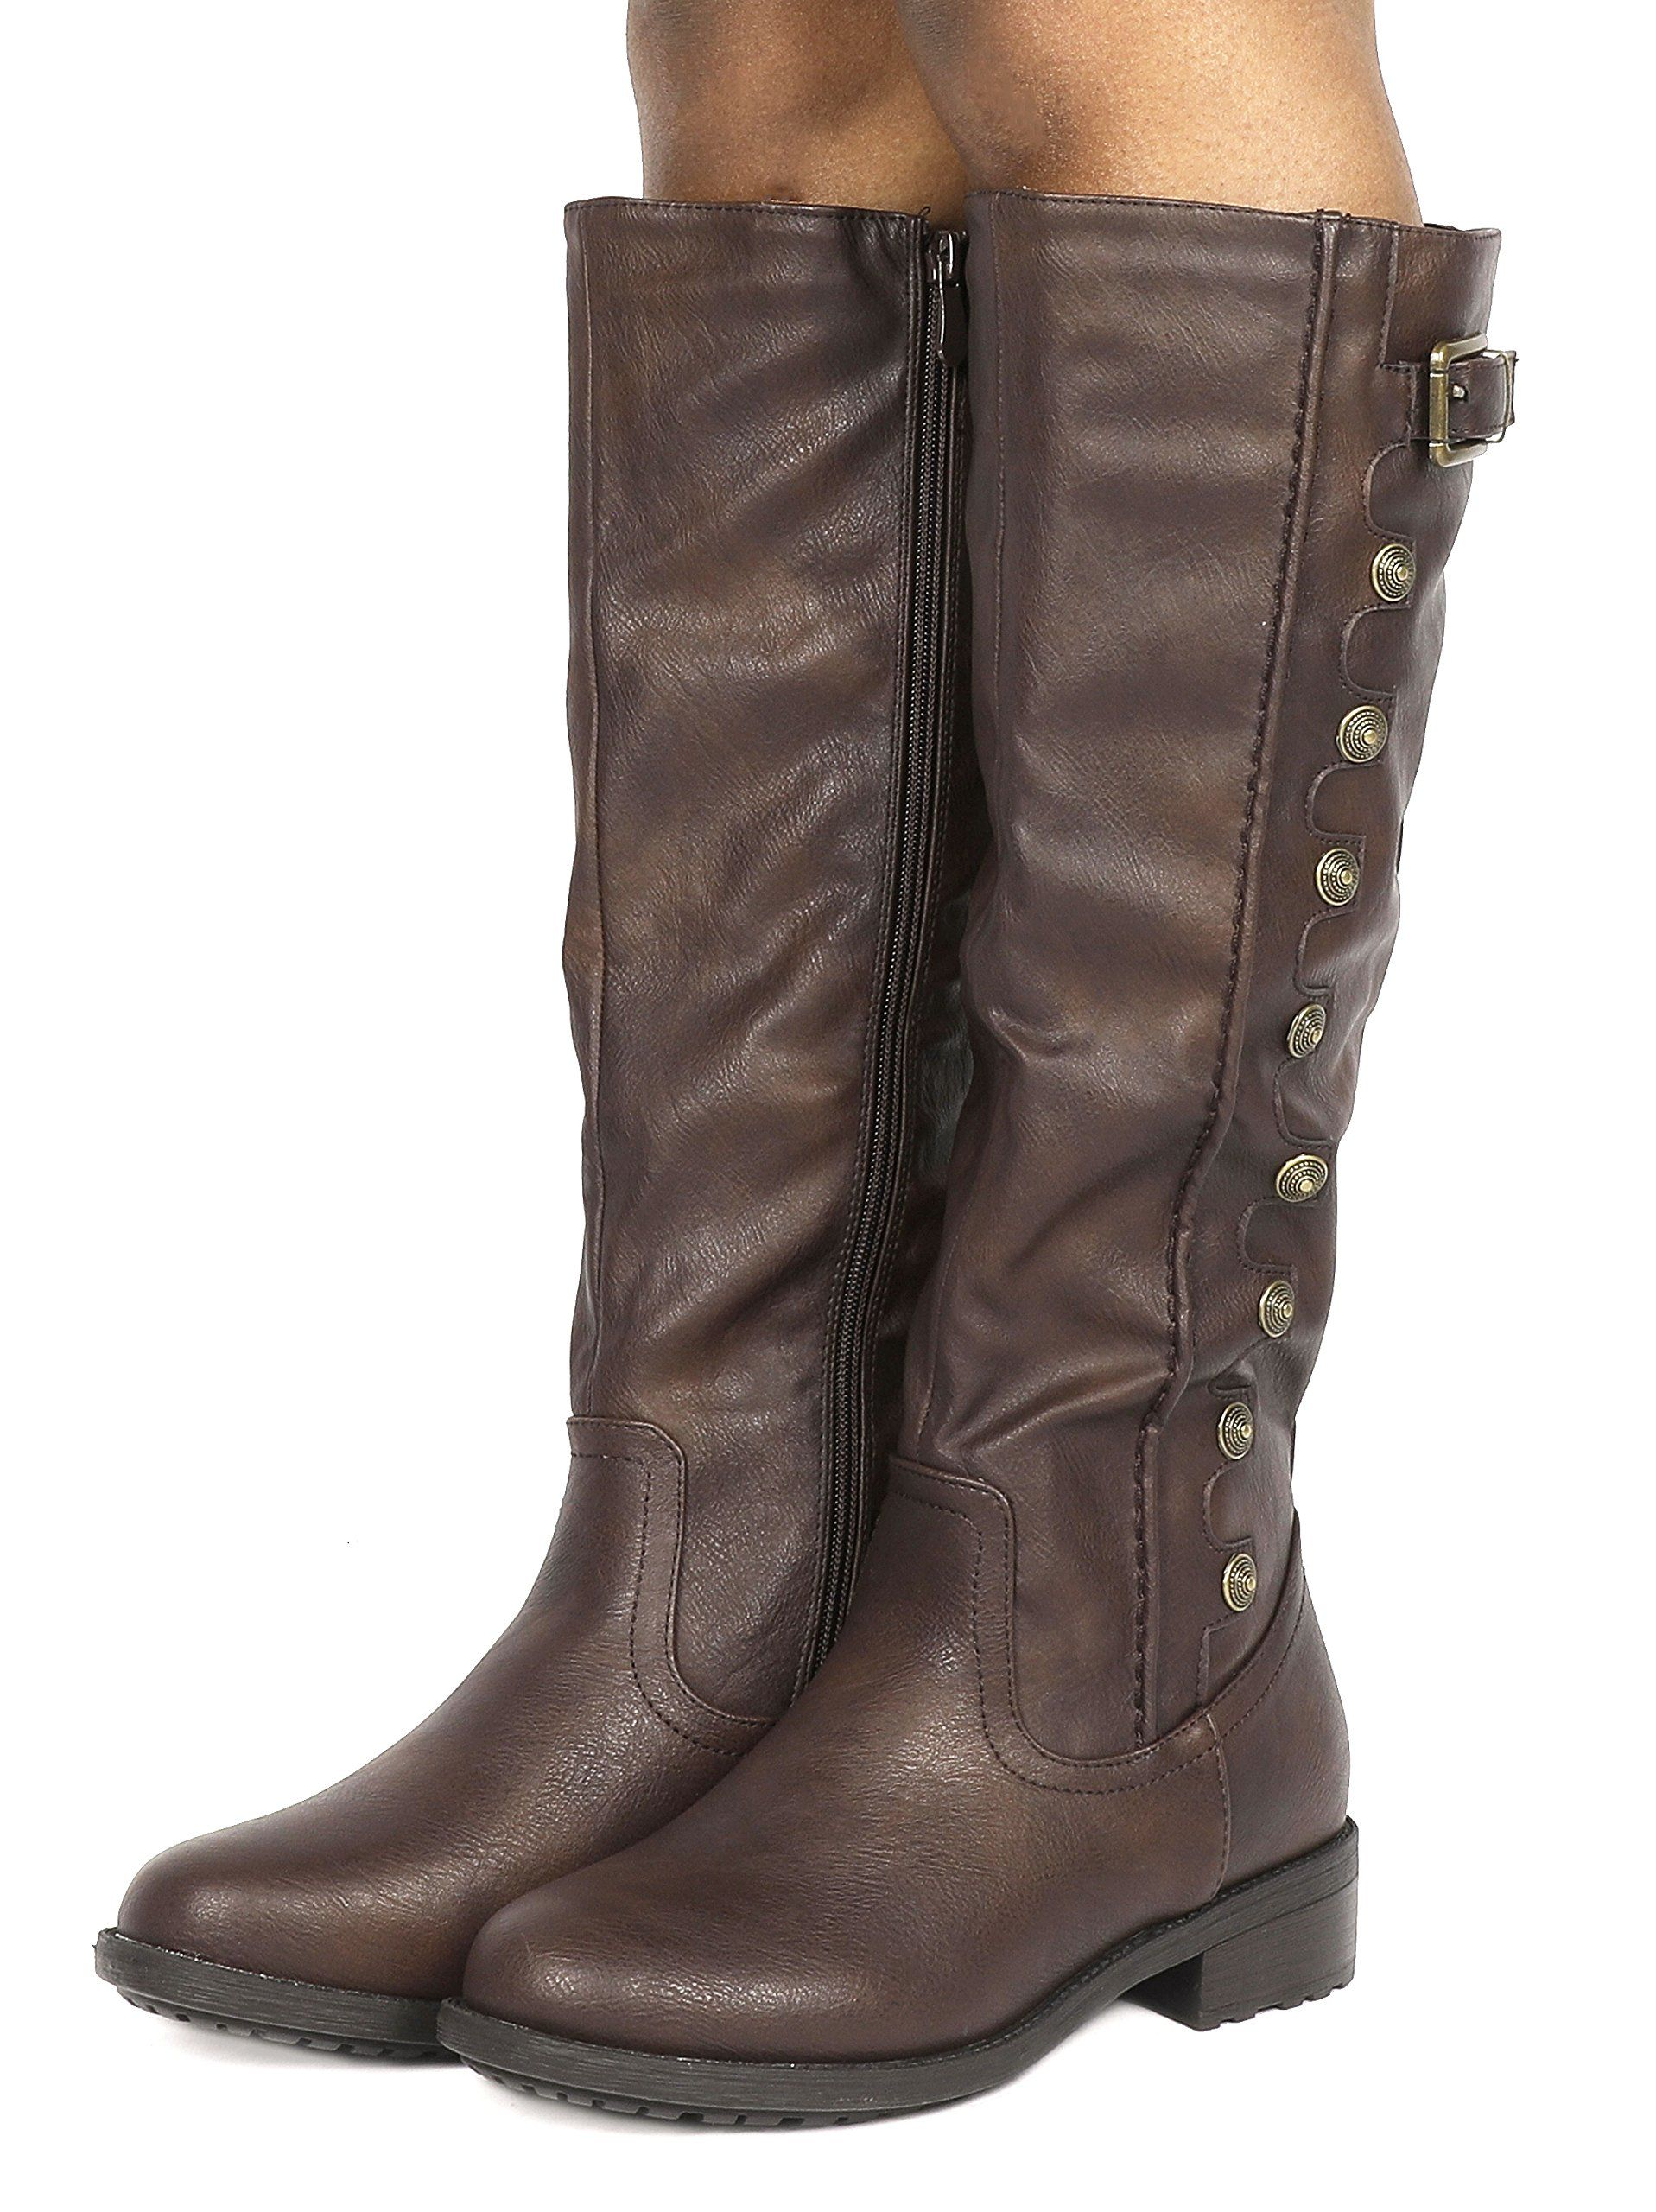 f59d8418b08 DREAM PAIRS Womens Army Brown Pu Leather Knee High Winter Riding Boots Wide  Calf Size 8.5 M US     Details can be found by clicking on the image.